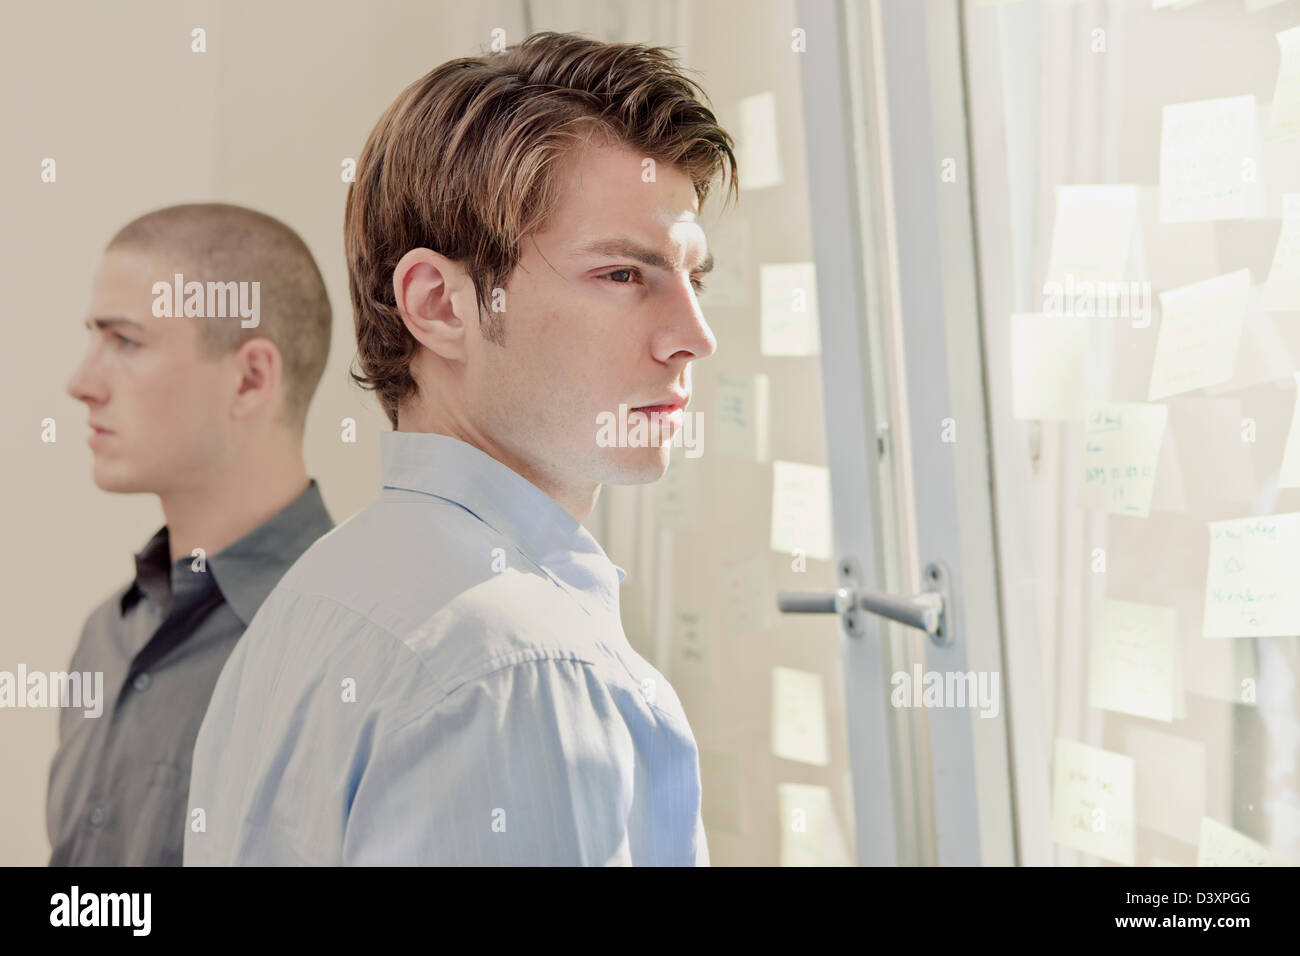 concept photo of two office workers in discord and rivalry - Stock Image